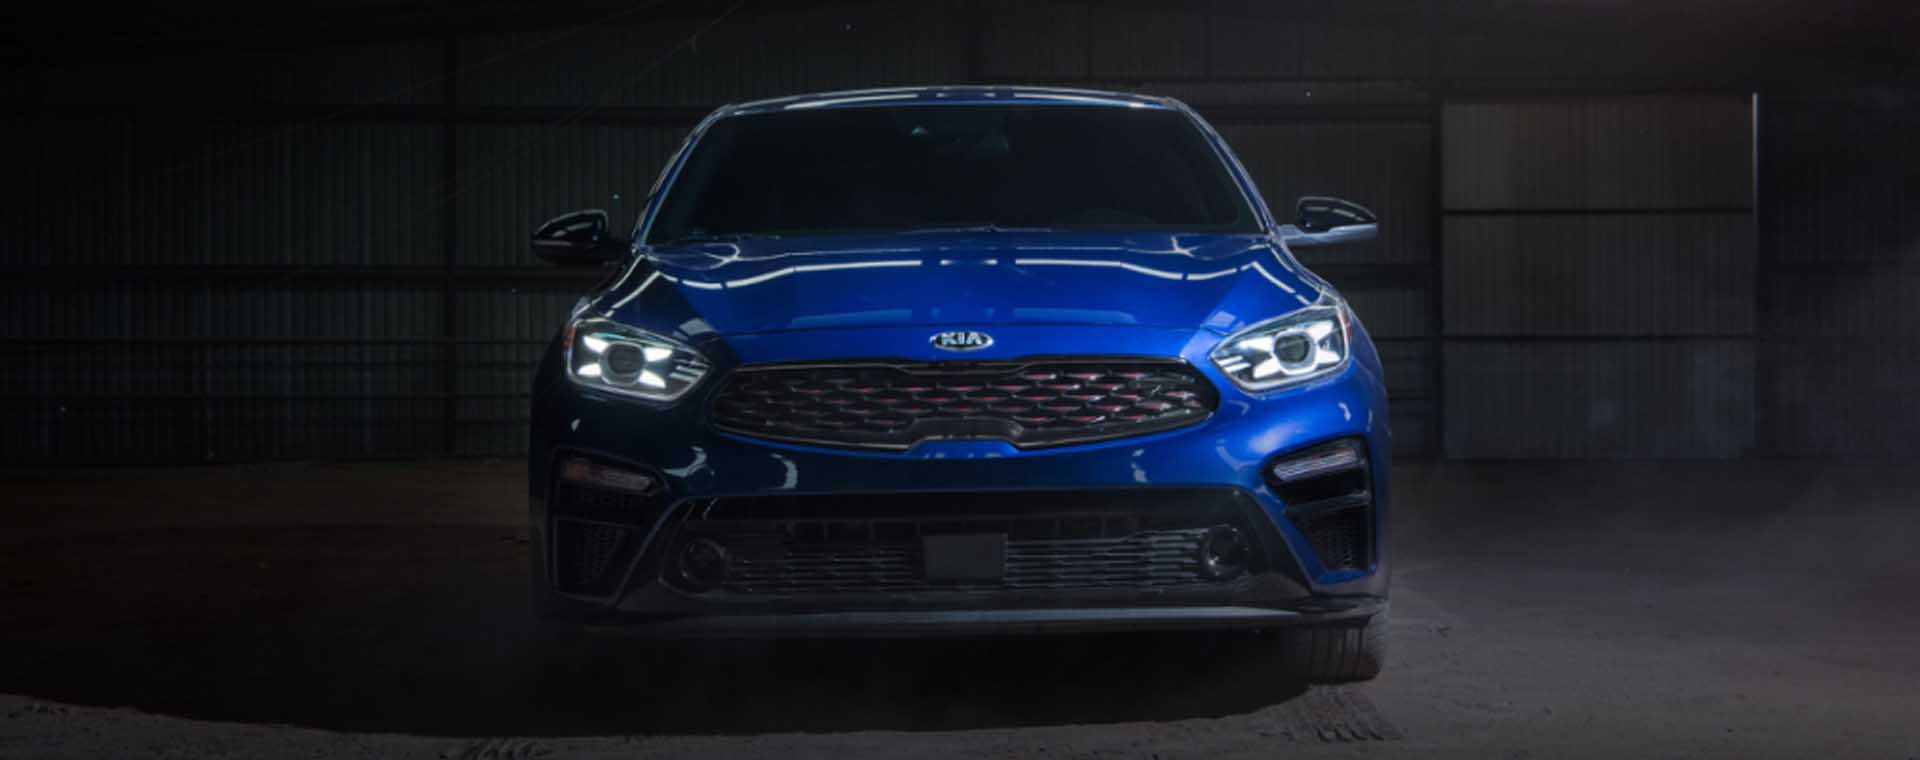 2020 Forte for sale in Kingsport, Tennessee